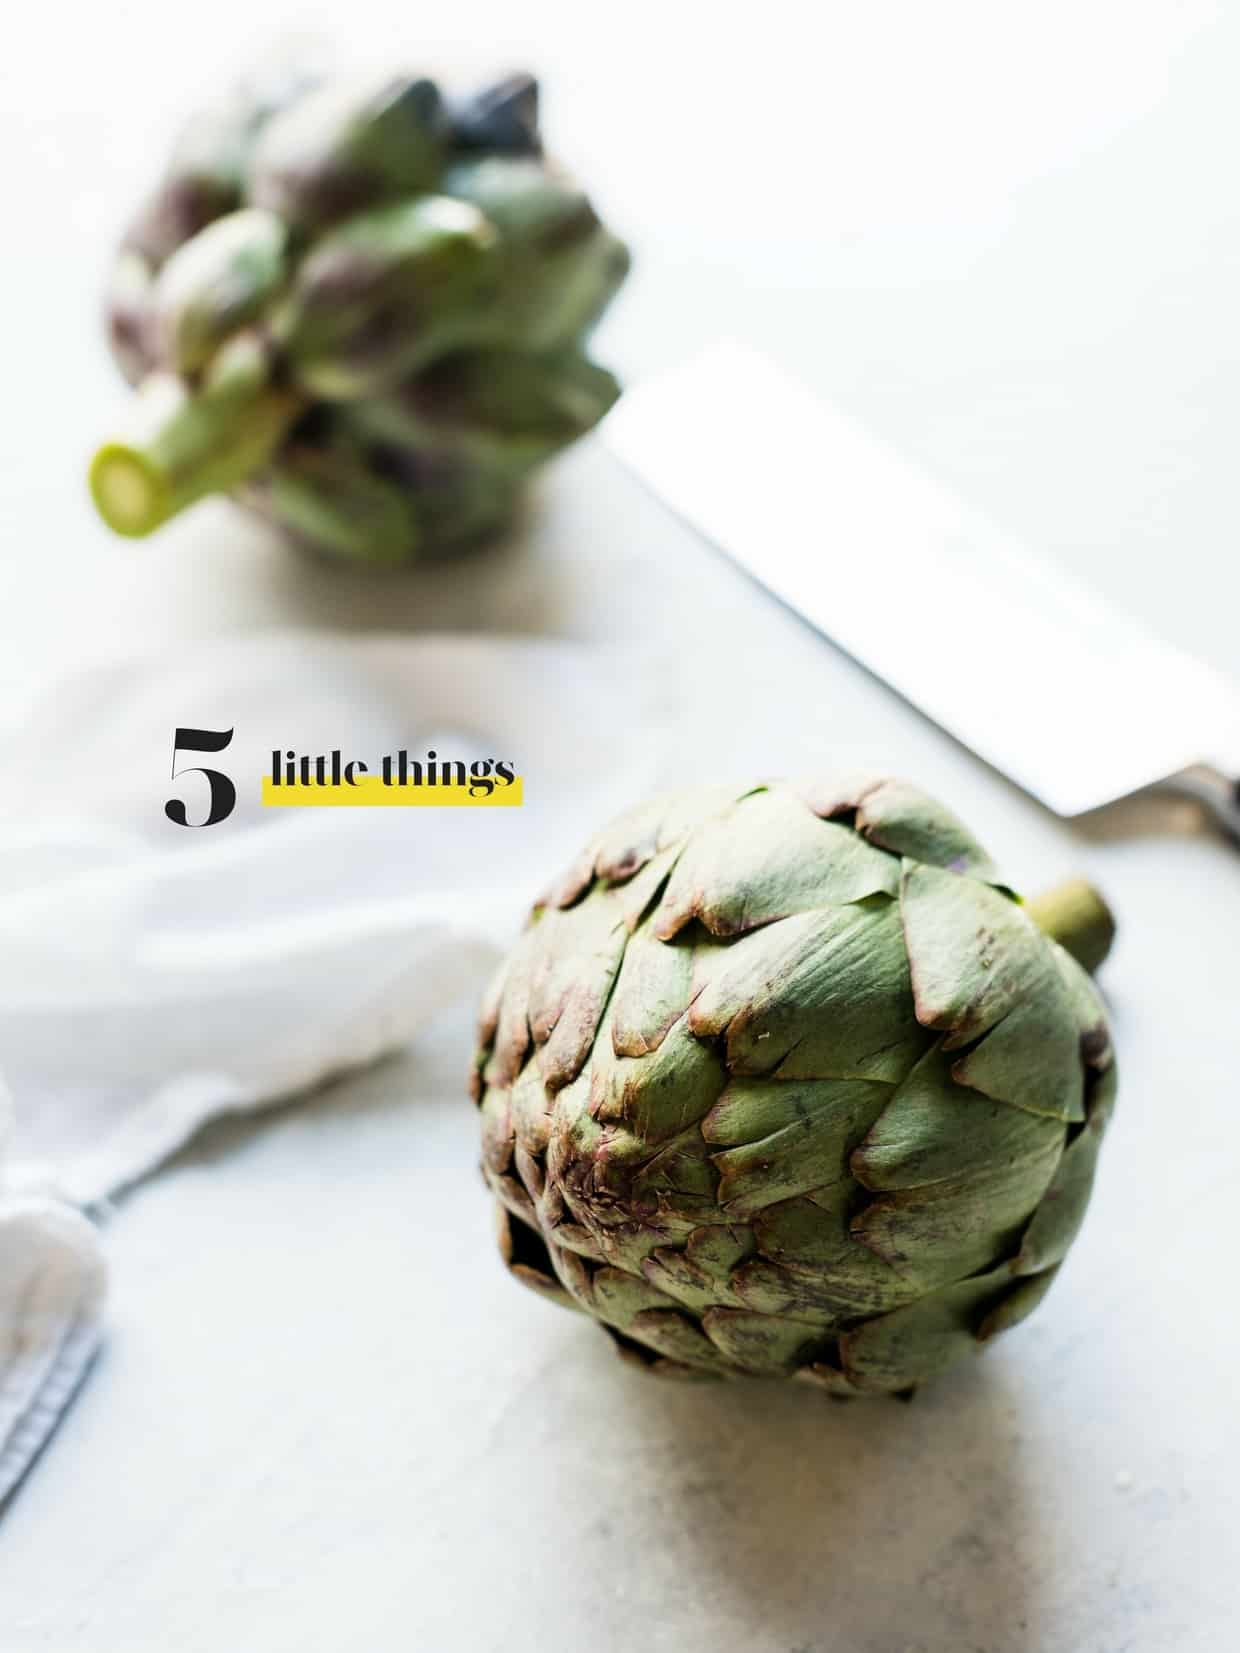 Two artichokes and a knife on a cutting board.